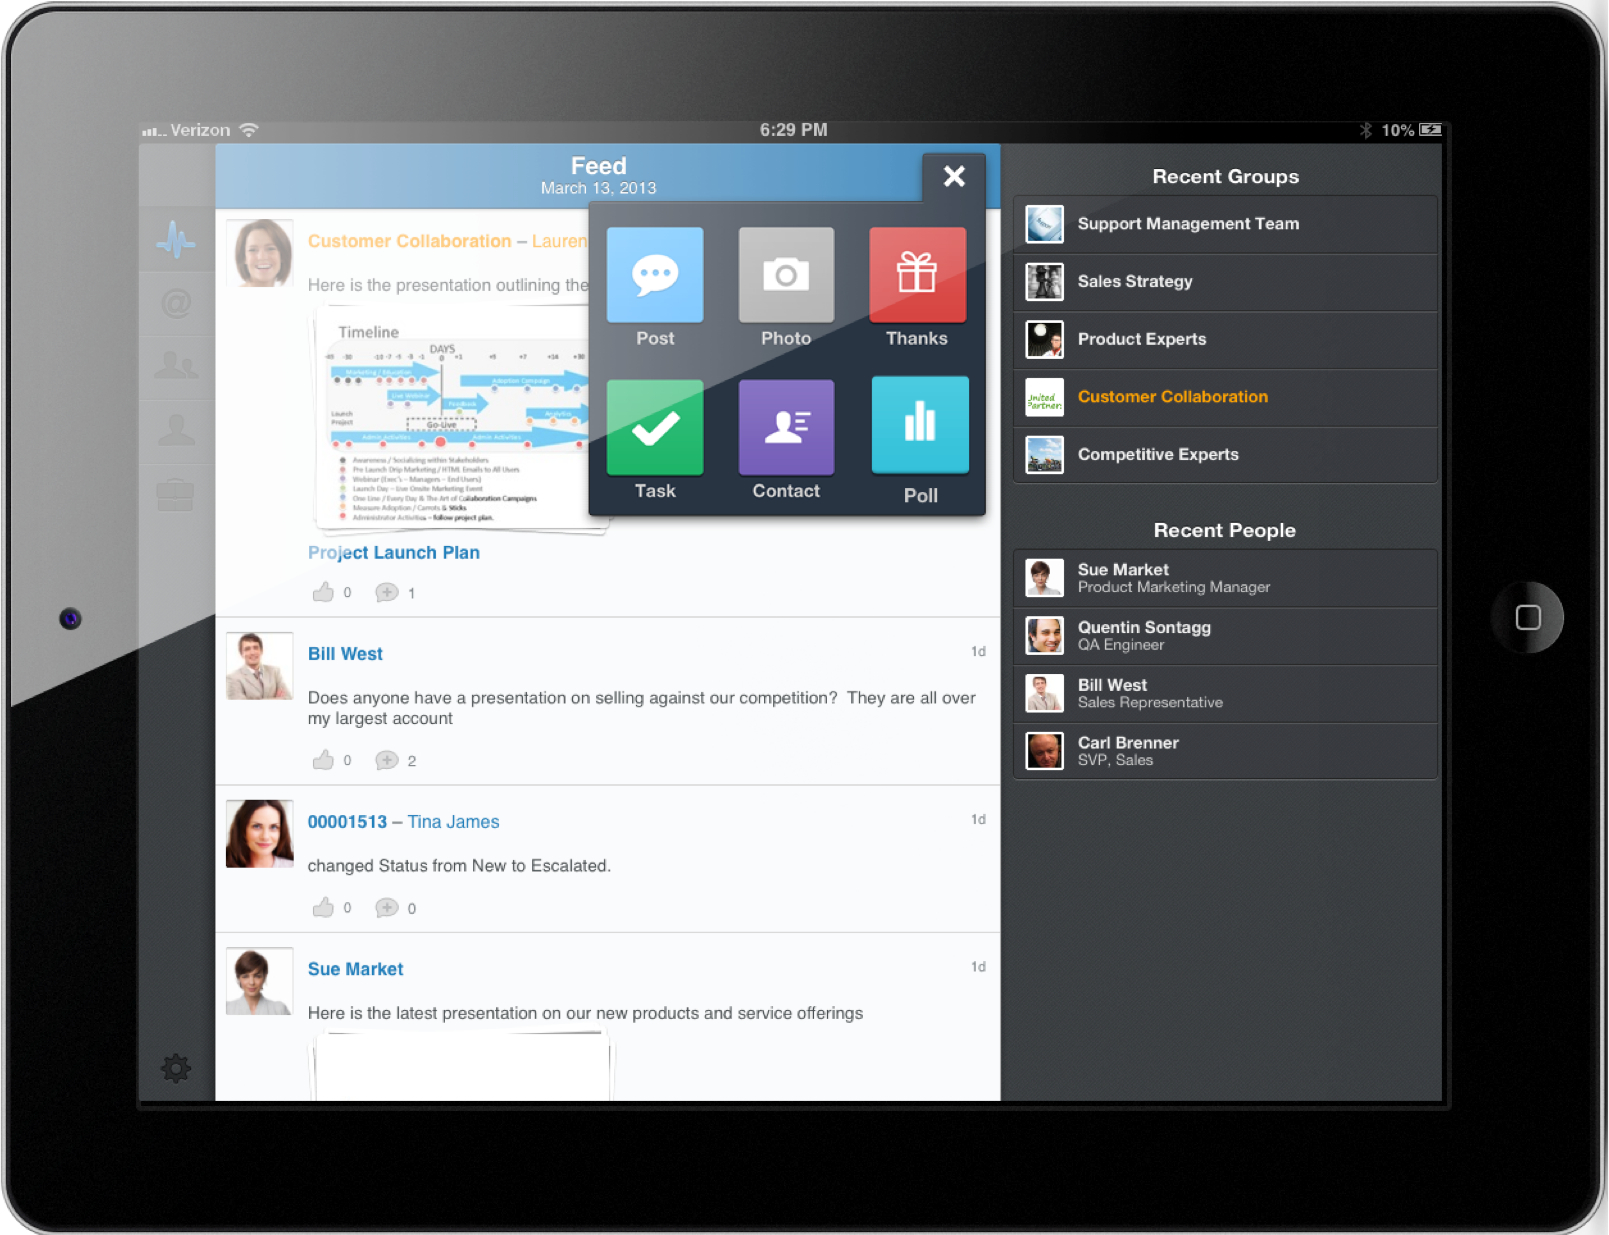 Salesforce.com has new mobile capabilities for its Chatter enterprise social network.